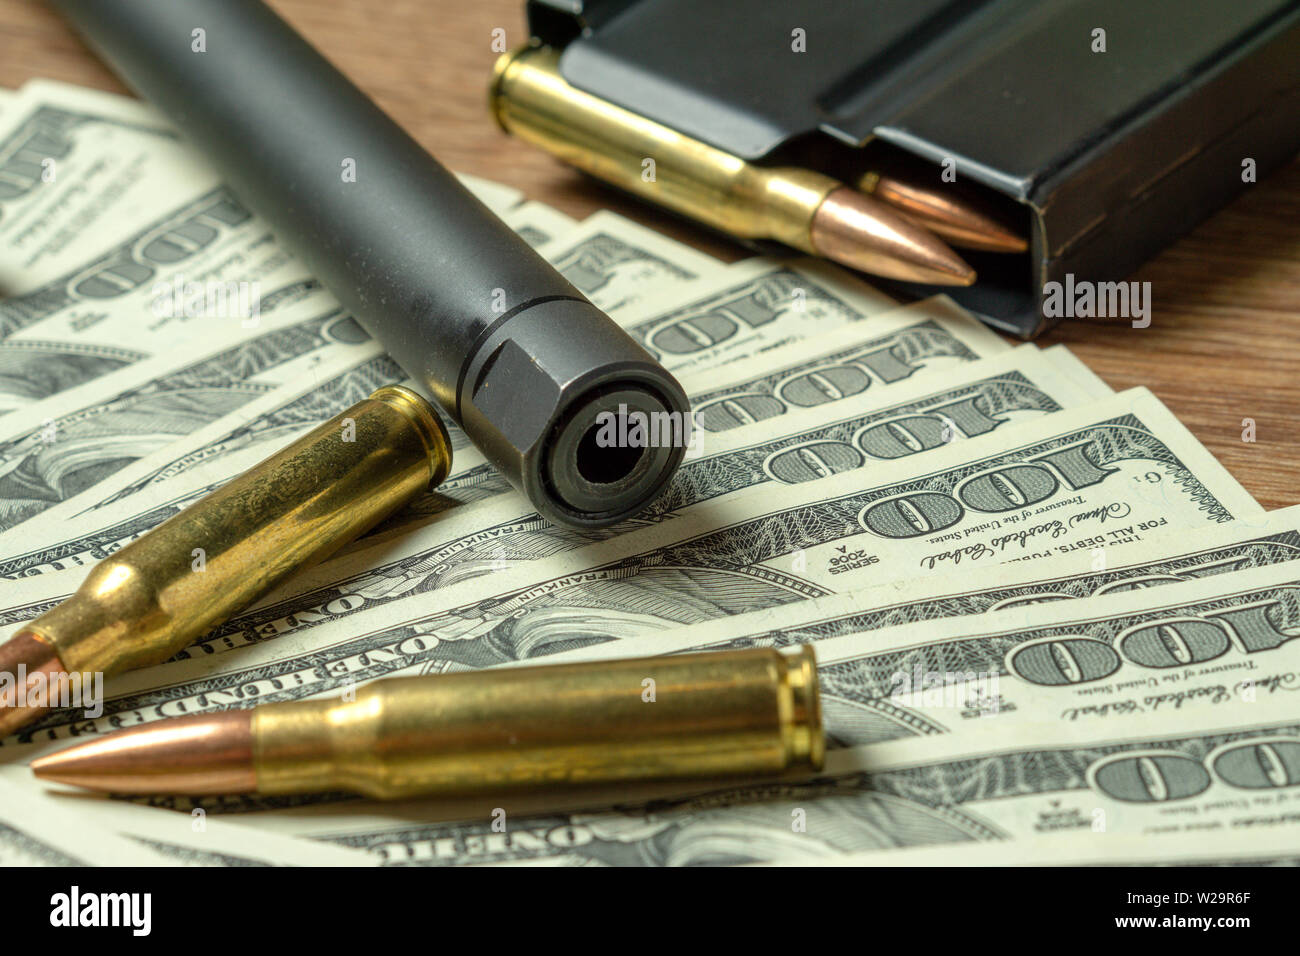 Rifle barrel, magazine and cartridges on dollars. Concept for crime, contract killing, paid assassin, terrorism, war, global arms trade, weapons sale - Stock Image